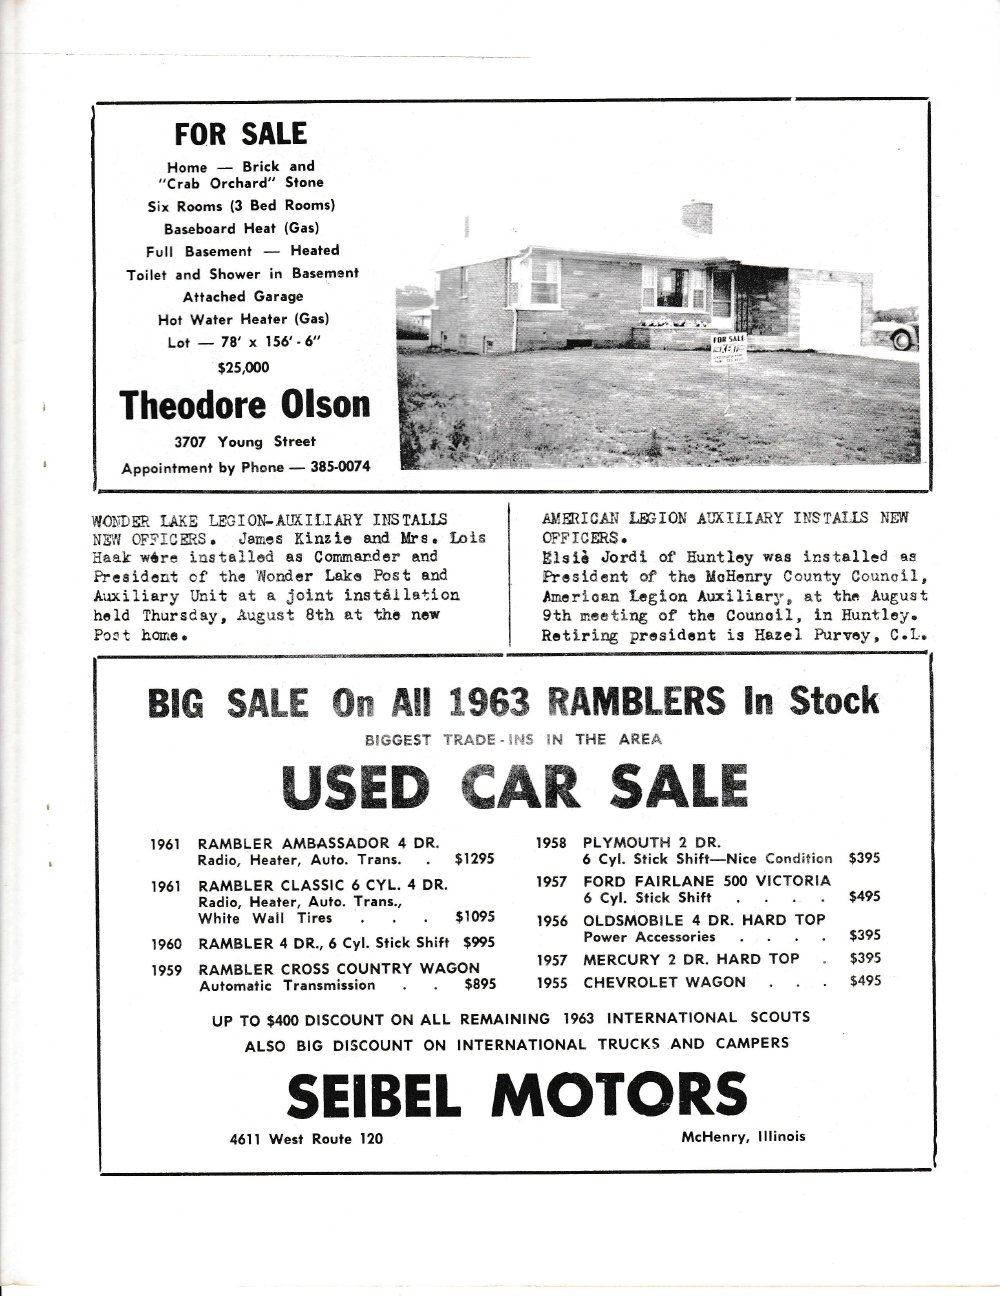 The Pictorial Newsletter: August 14, 1963